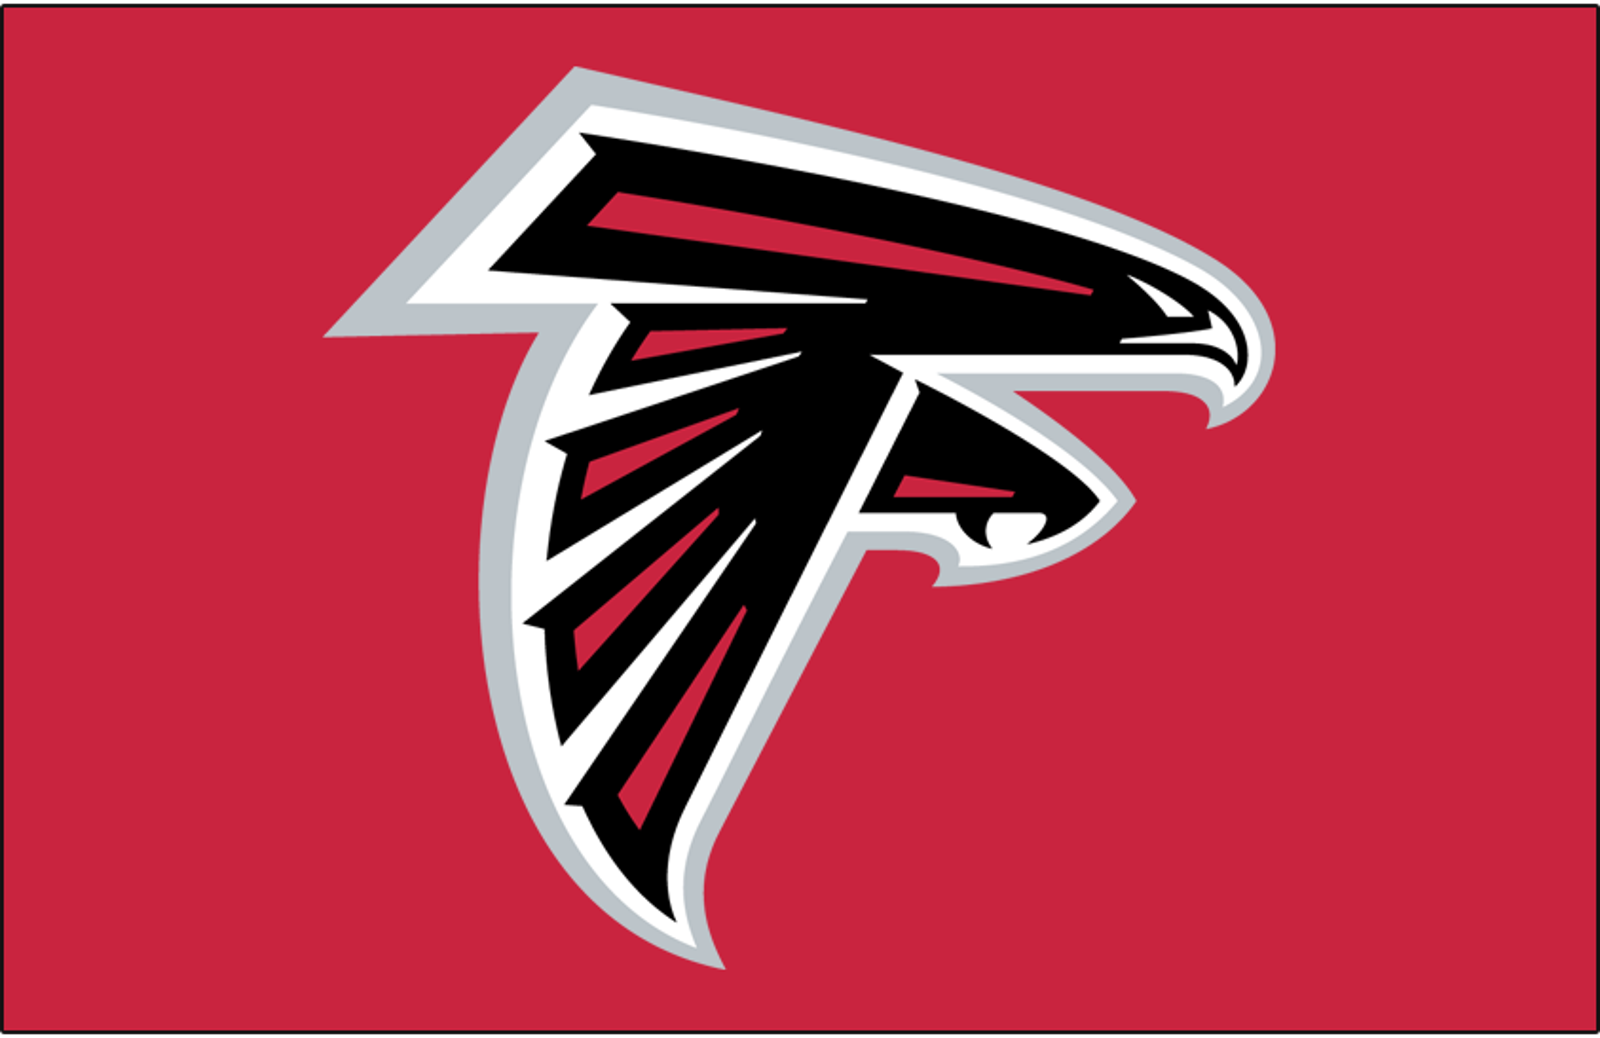 81. Atlanta Falcons